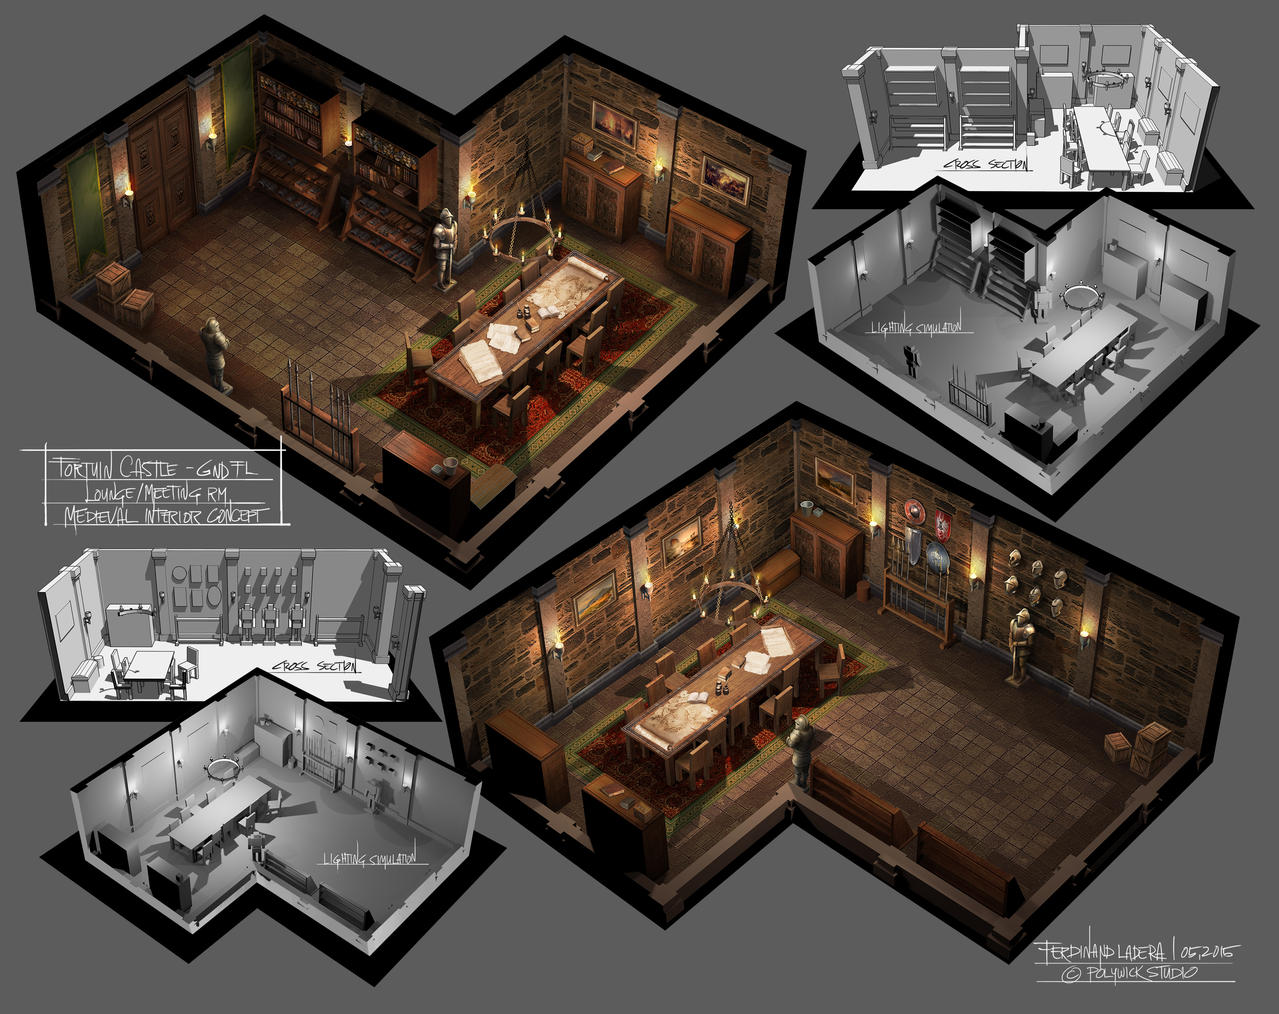 Steampunk interior by ferdinandladera on deviantart - Medieval Interior Meeting Room By Ferdinandladera On